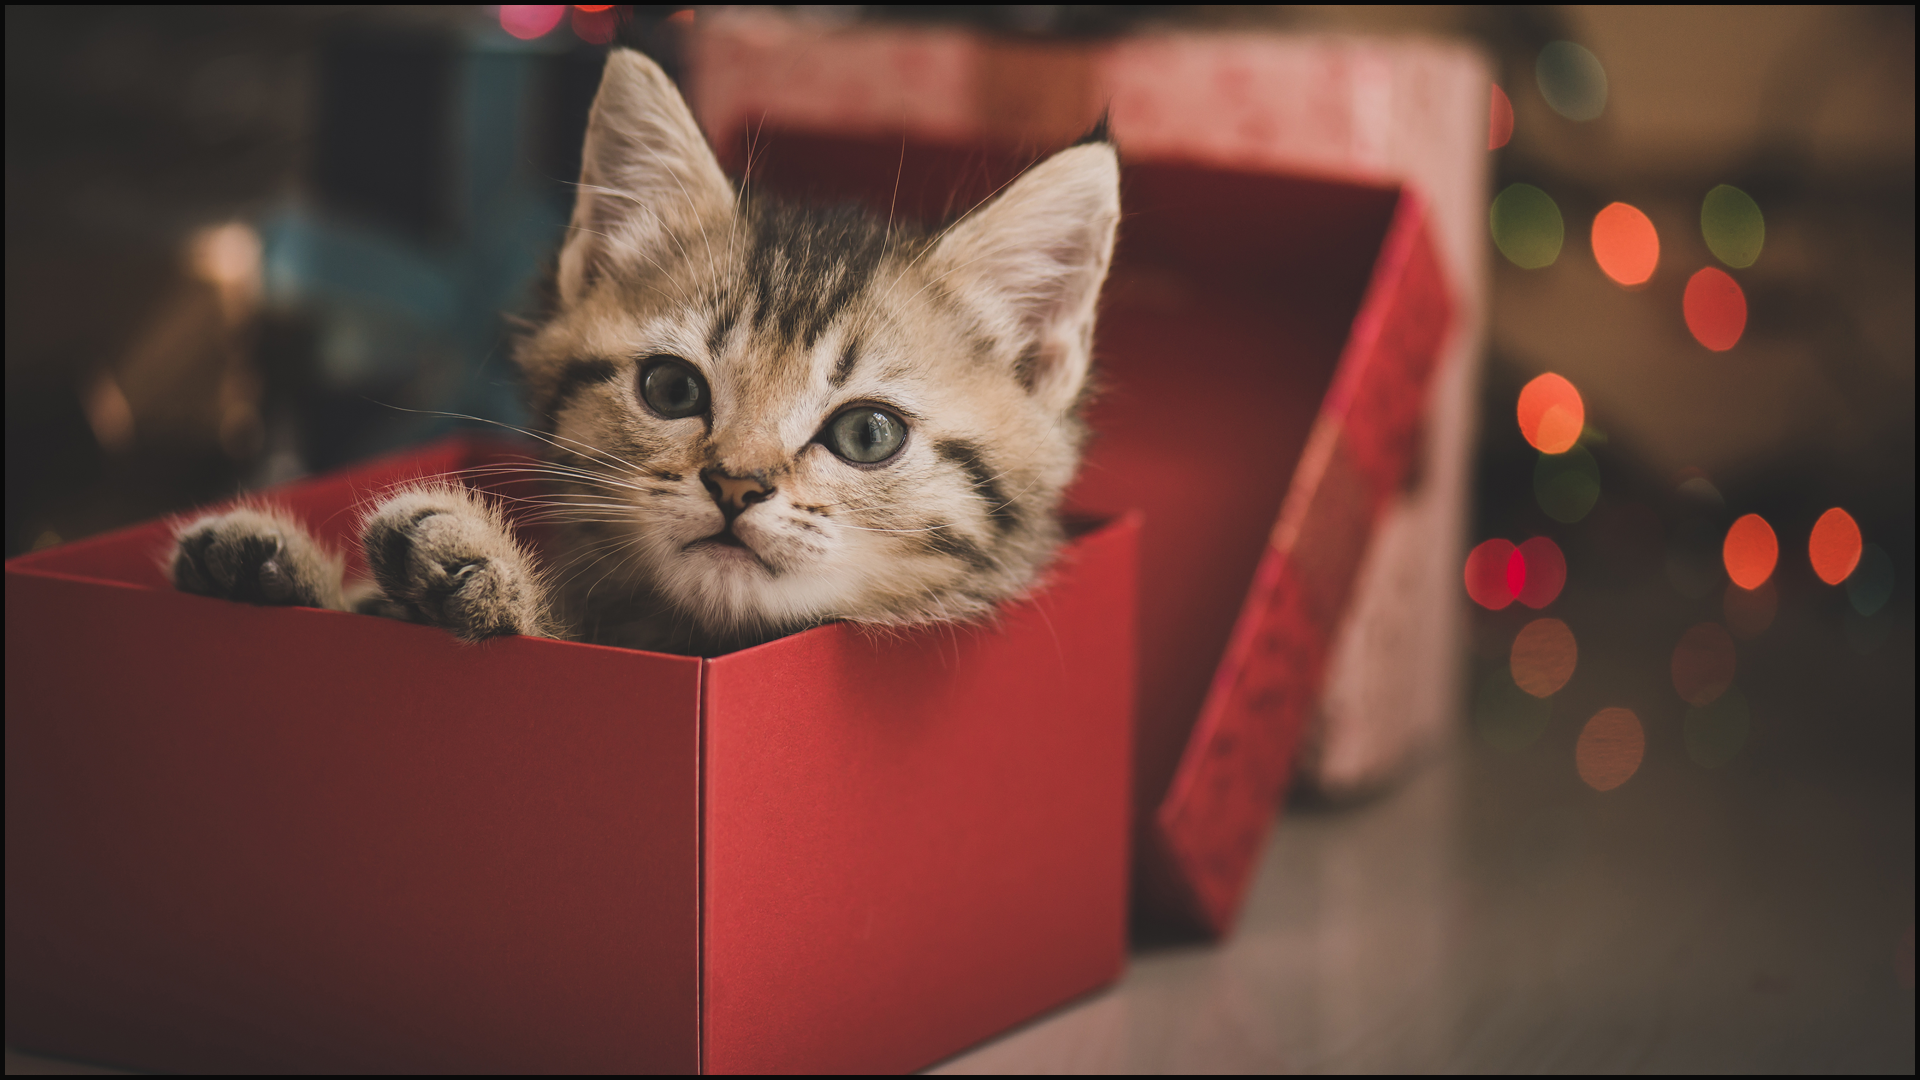 4 Tips You Should Consider Before Giving a Pet as a Gift